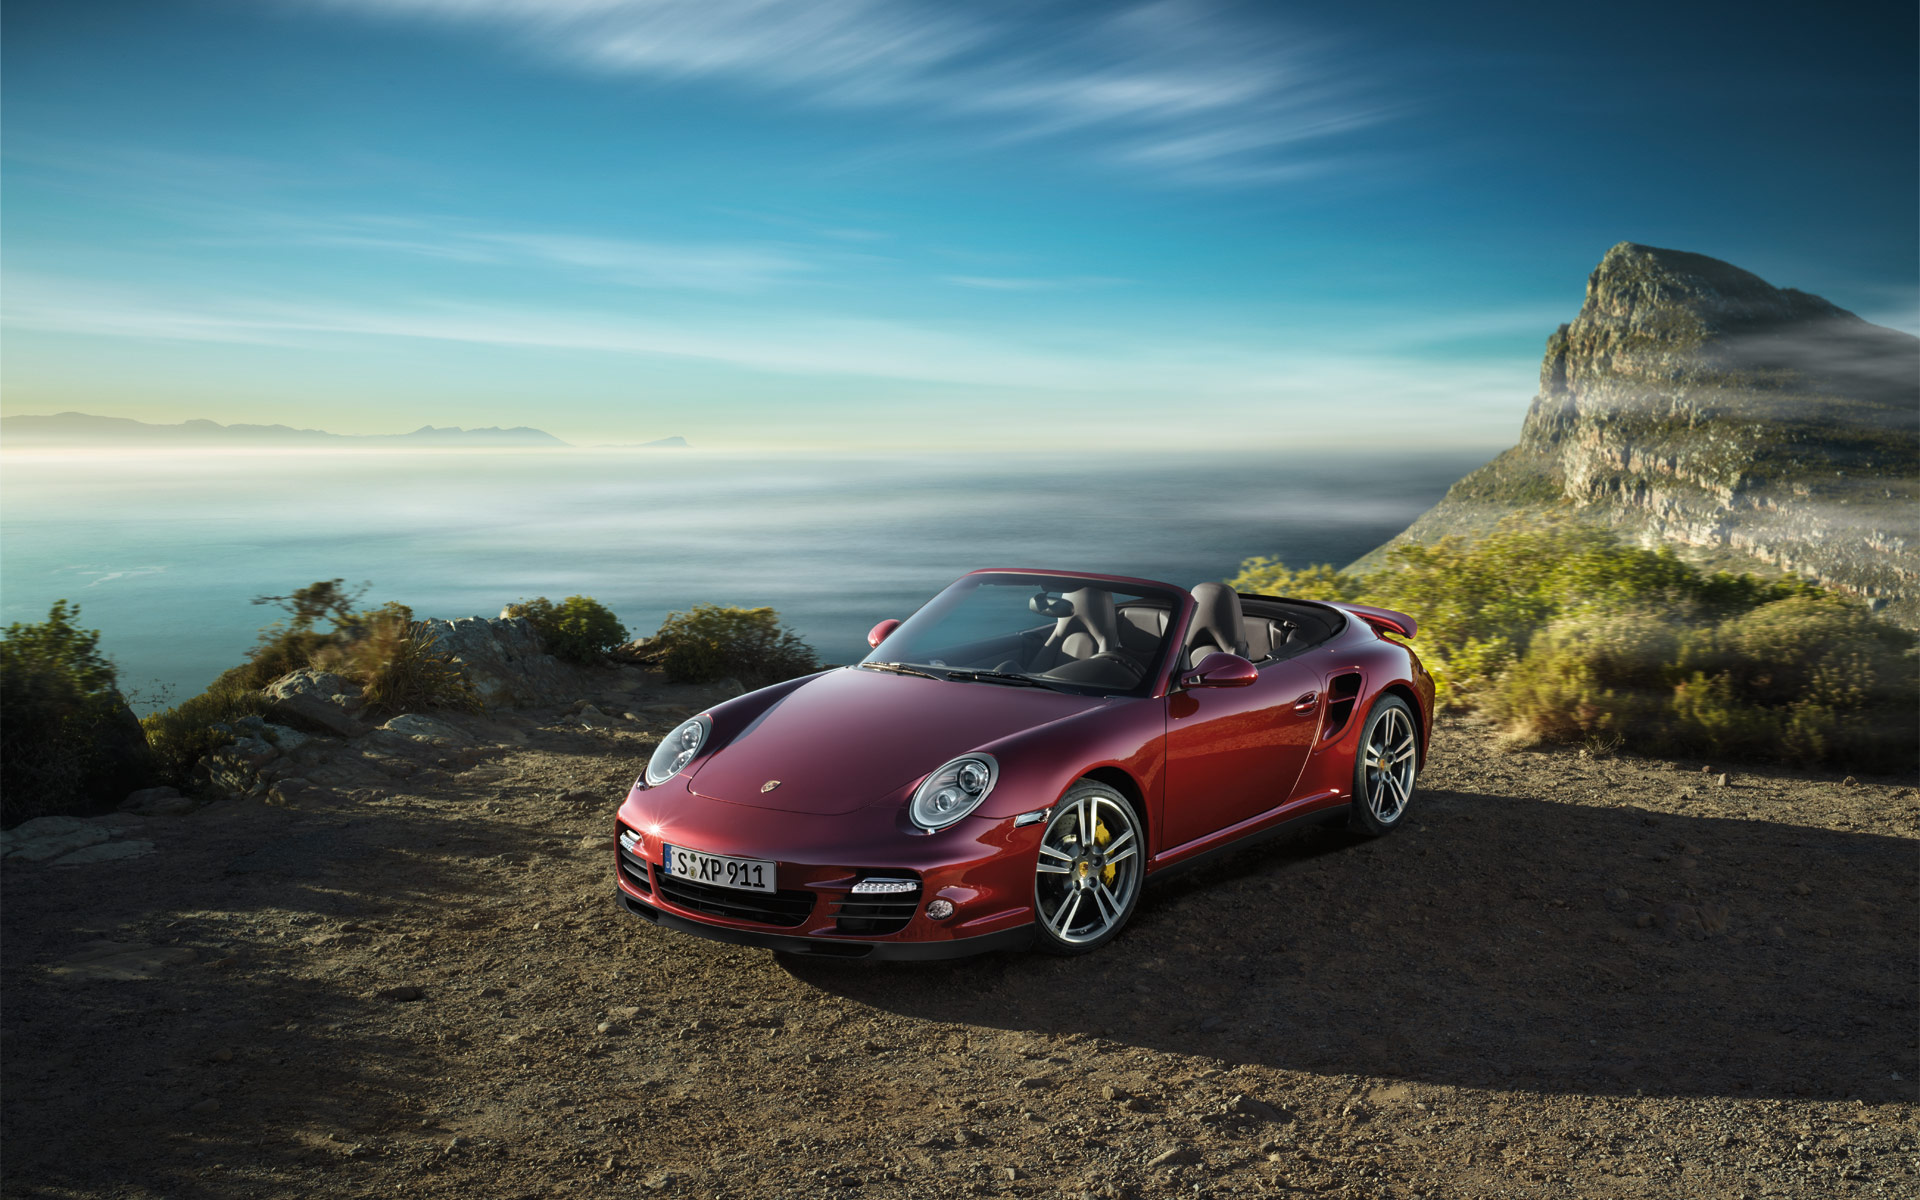 Porsche 911 Turbo Cabriolet 2 Facebook Covers Car Wallpapers HD 1920x1200